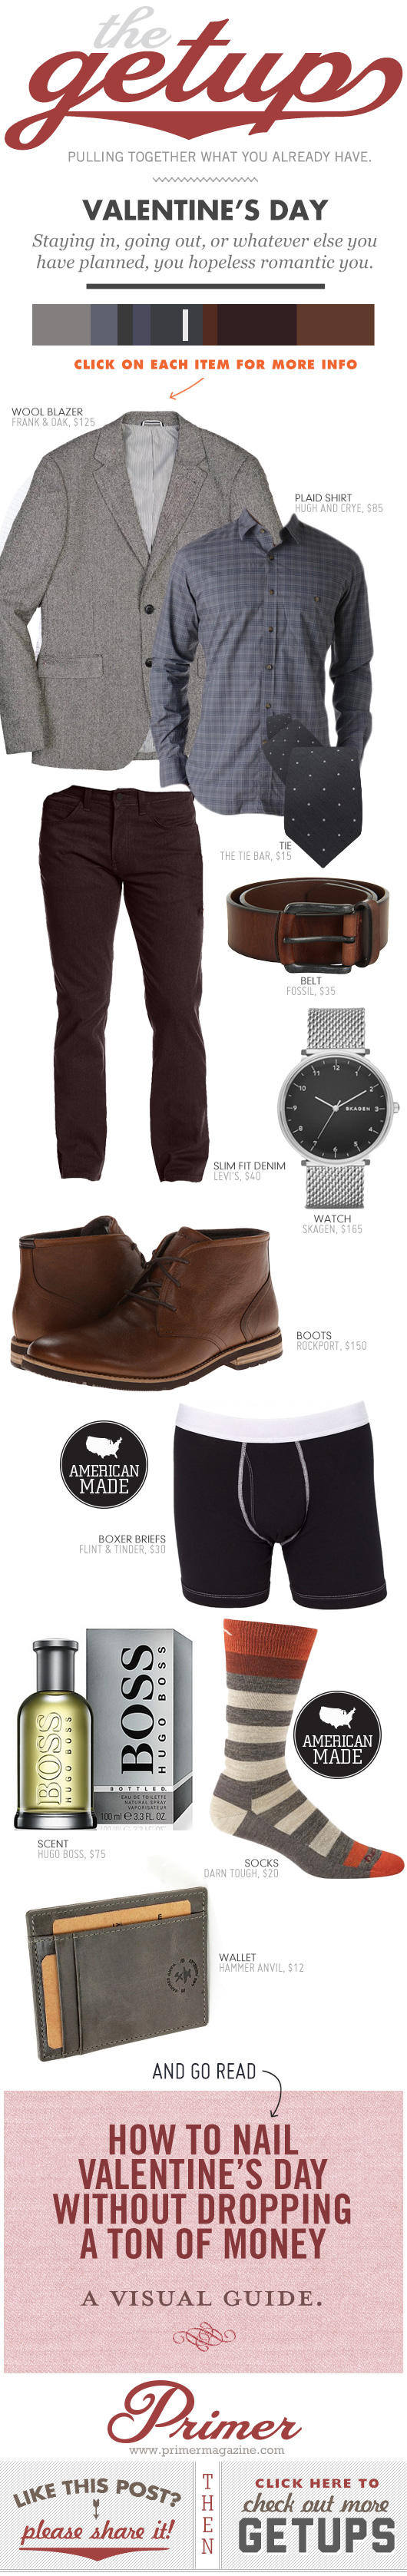 Getup Valentines Day - Outfit with gray blazer, slim denim, and brown boots